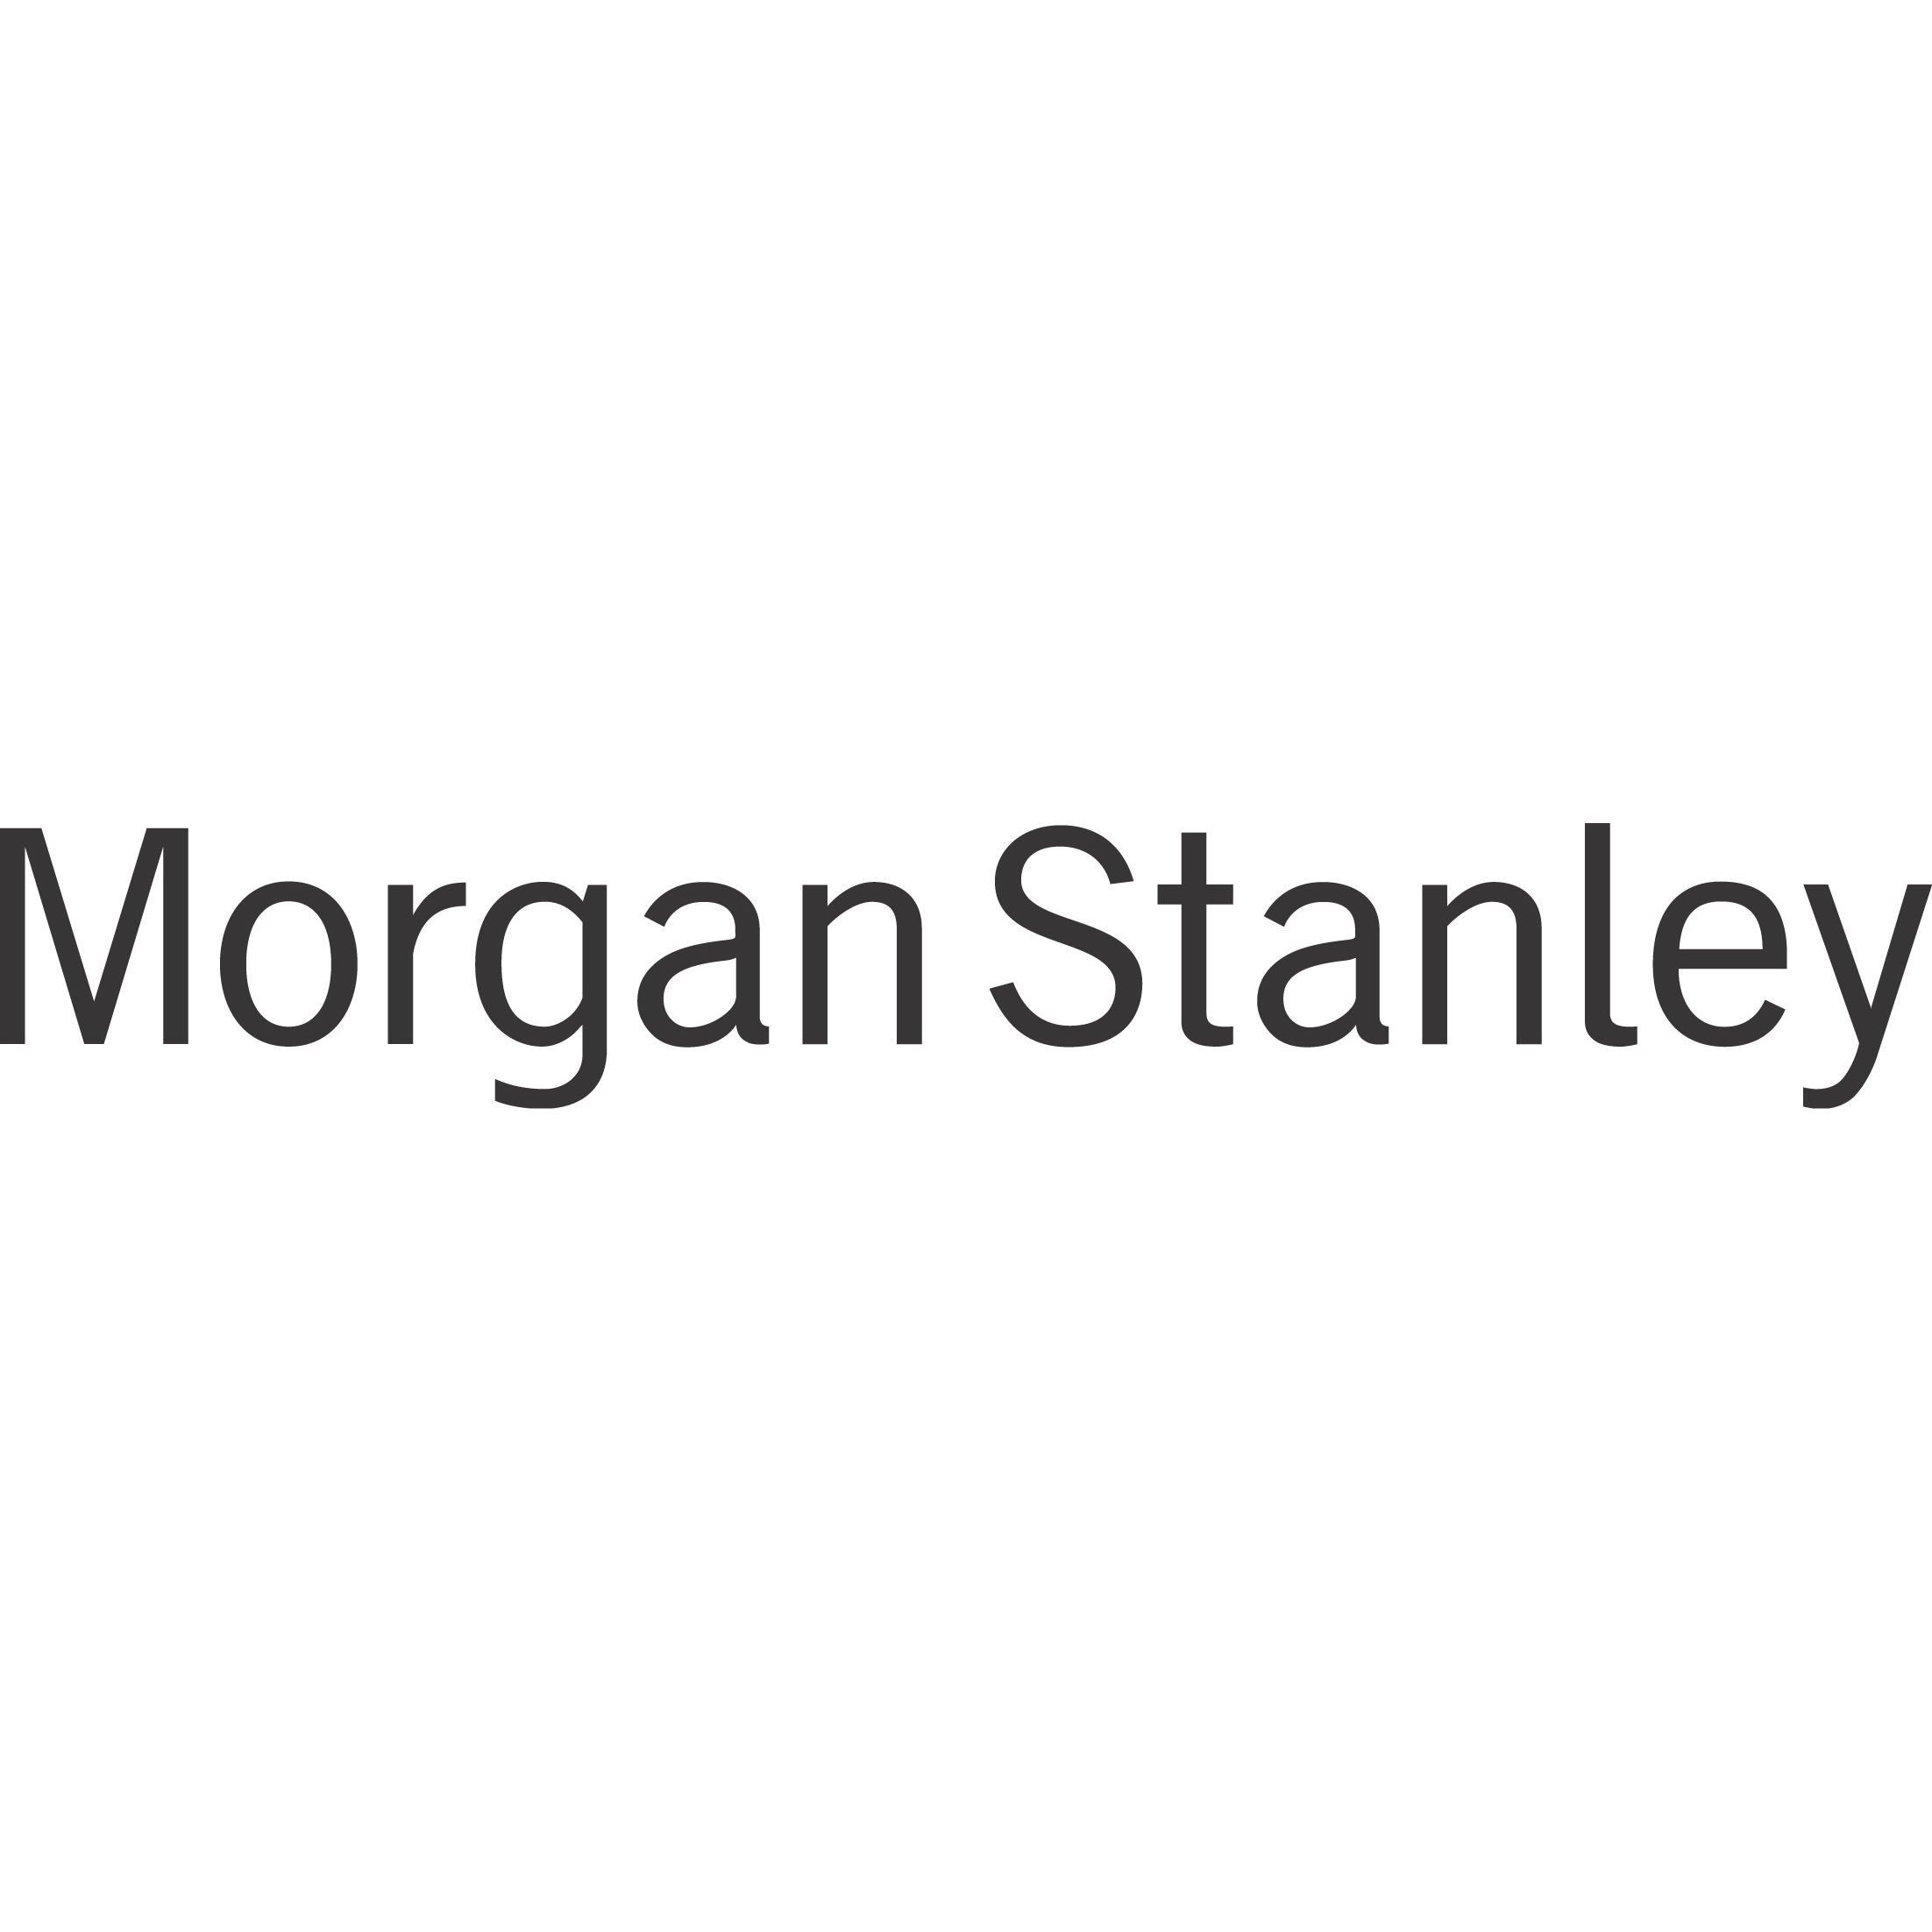 Susan E Gnall - Morgan Stanley | Financial Advisor in Morristown,New Jersey